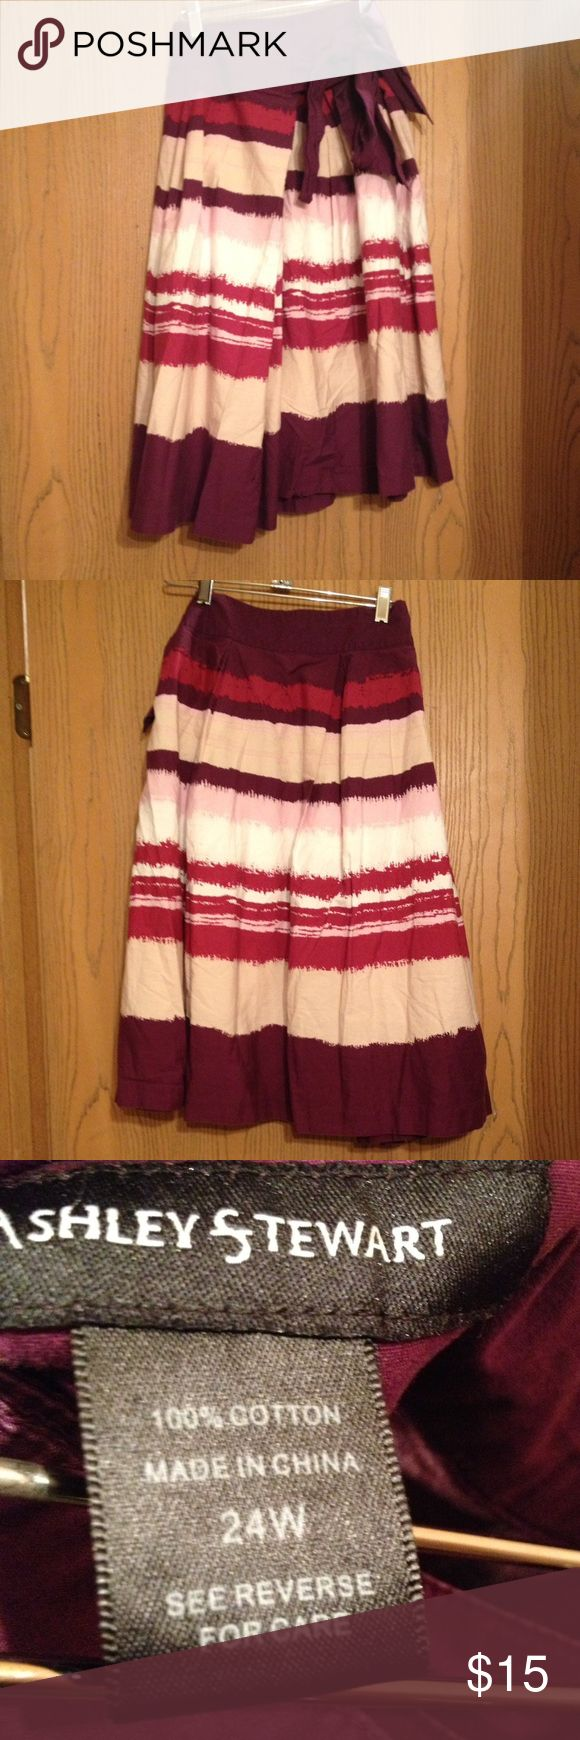 ❤️❤️Plus size skirt❤️❤️ Multi color skirt. In good condition. Ashley Stewart Skirts